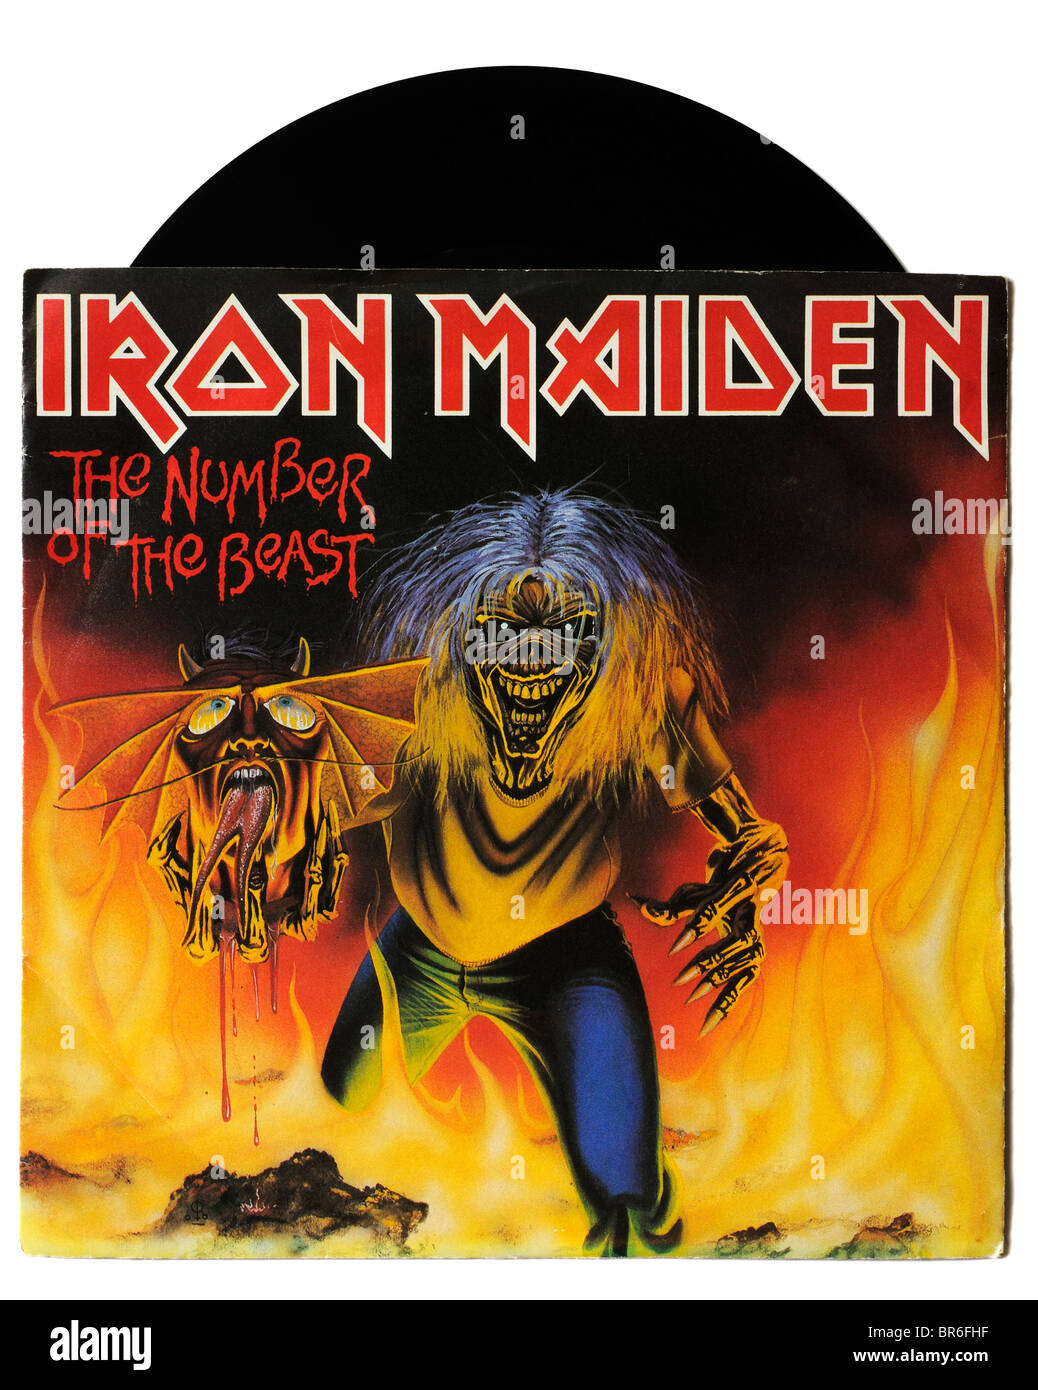 Iron Maiden Number Of The Beast Single Iron Maiden The Number of the